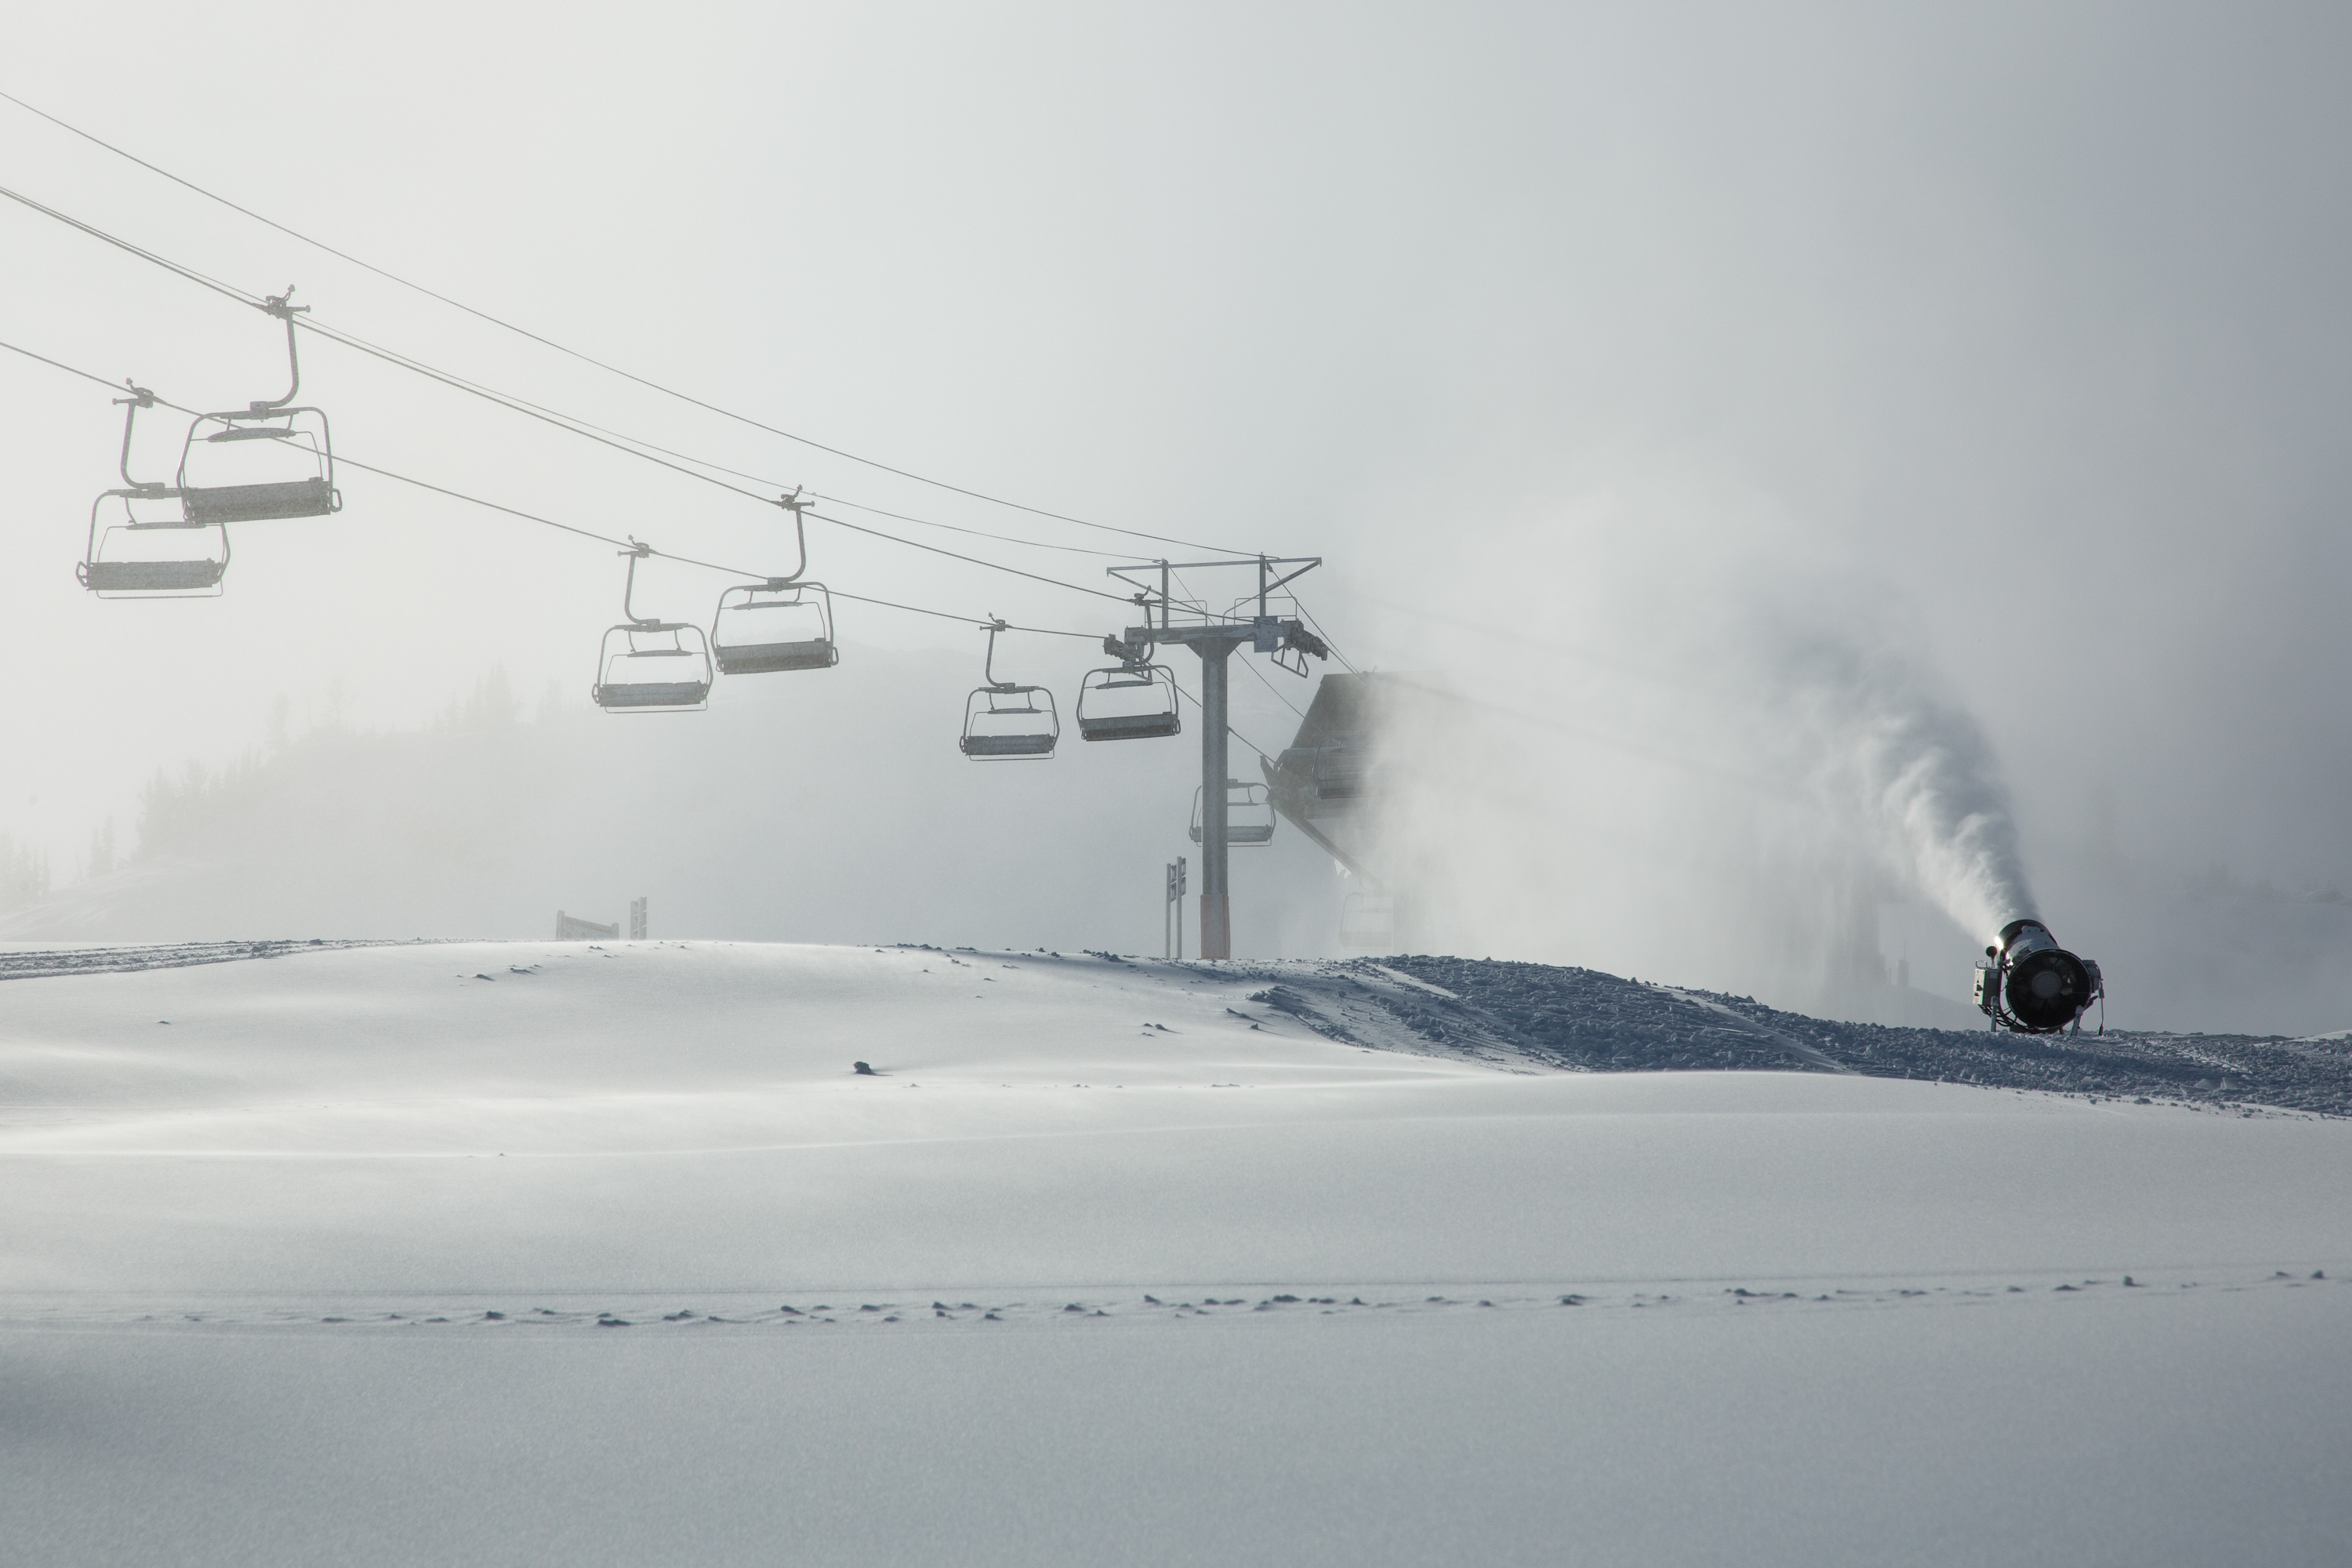 Location: At the top of Emerald Express chairlift